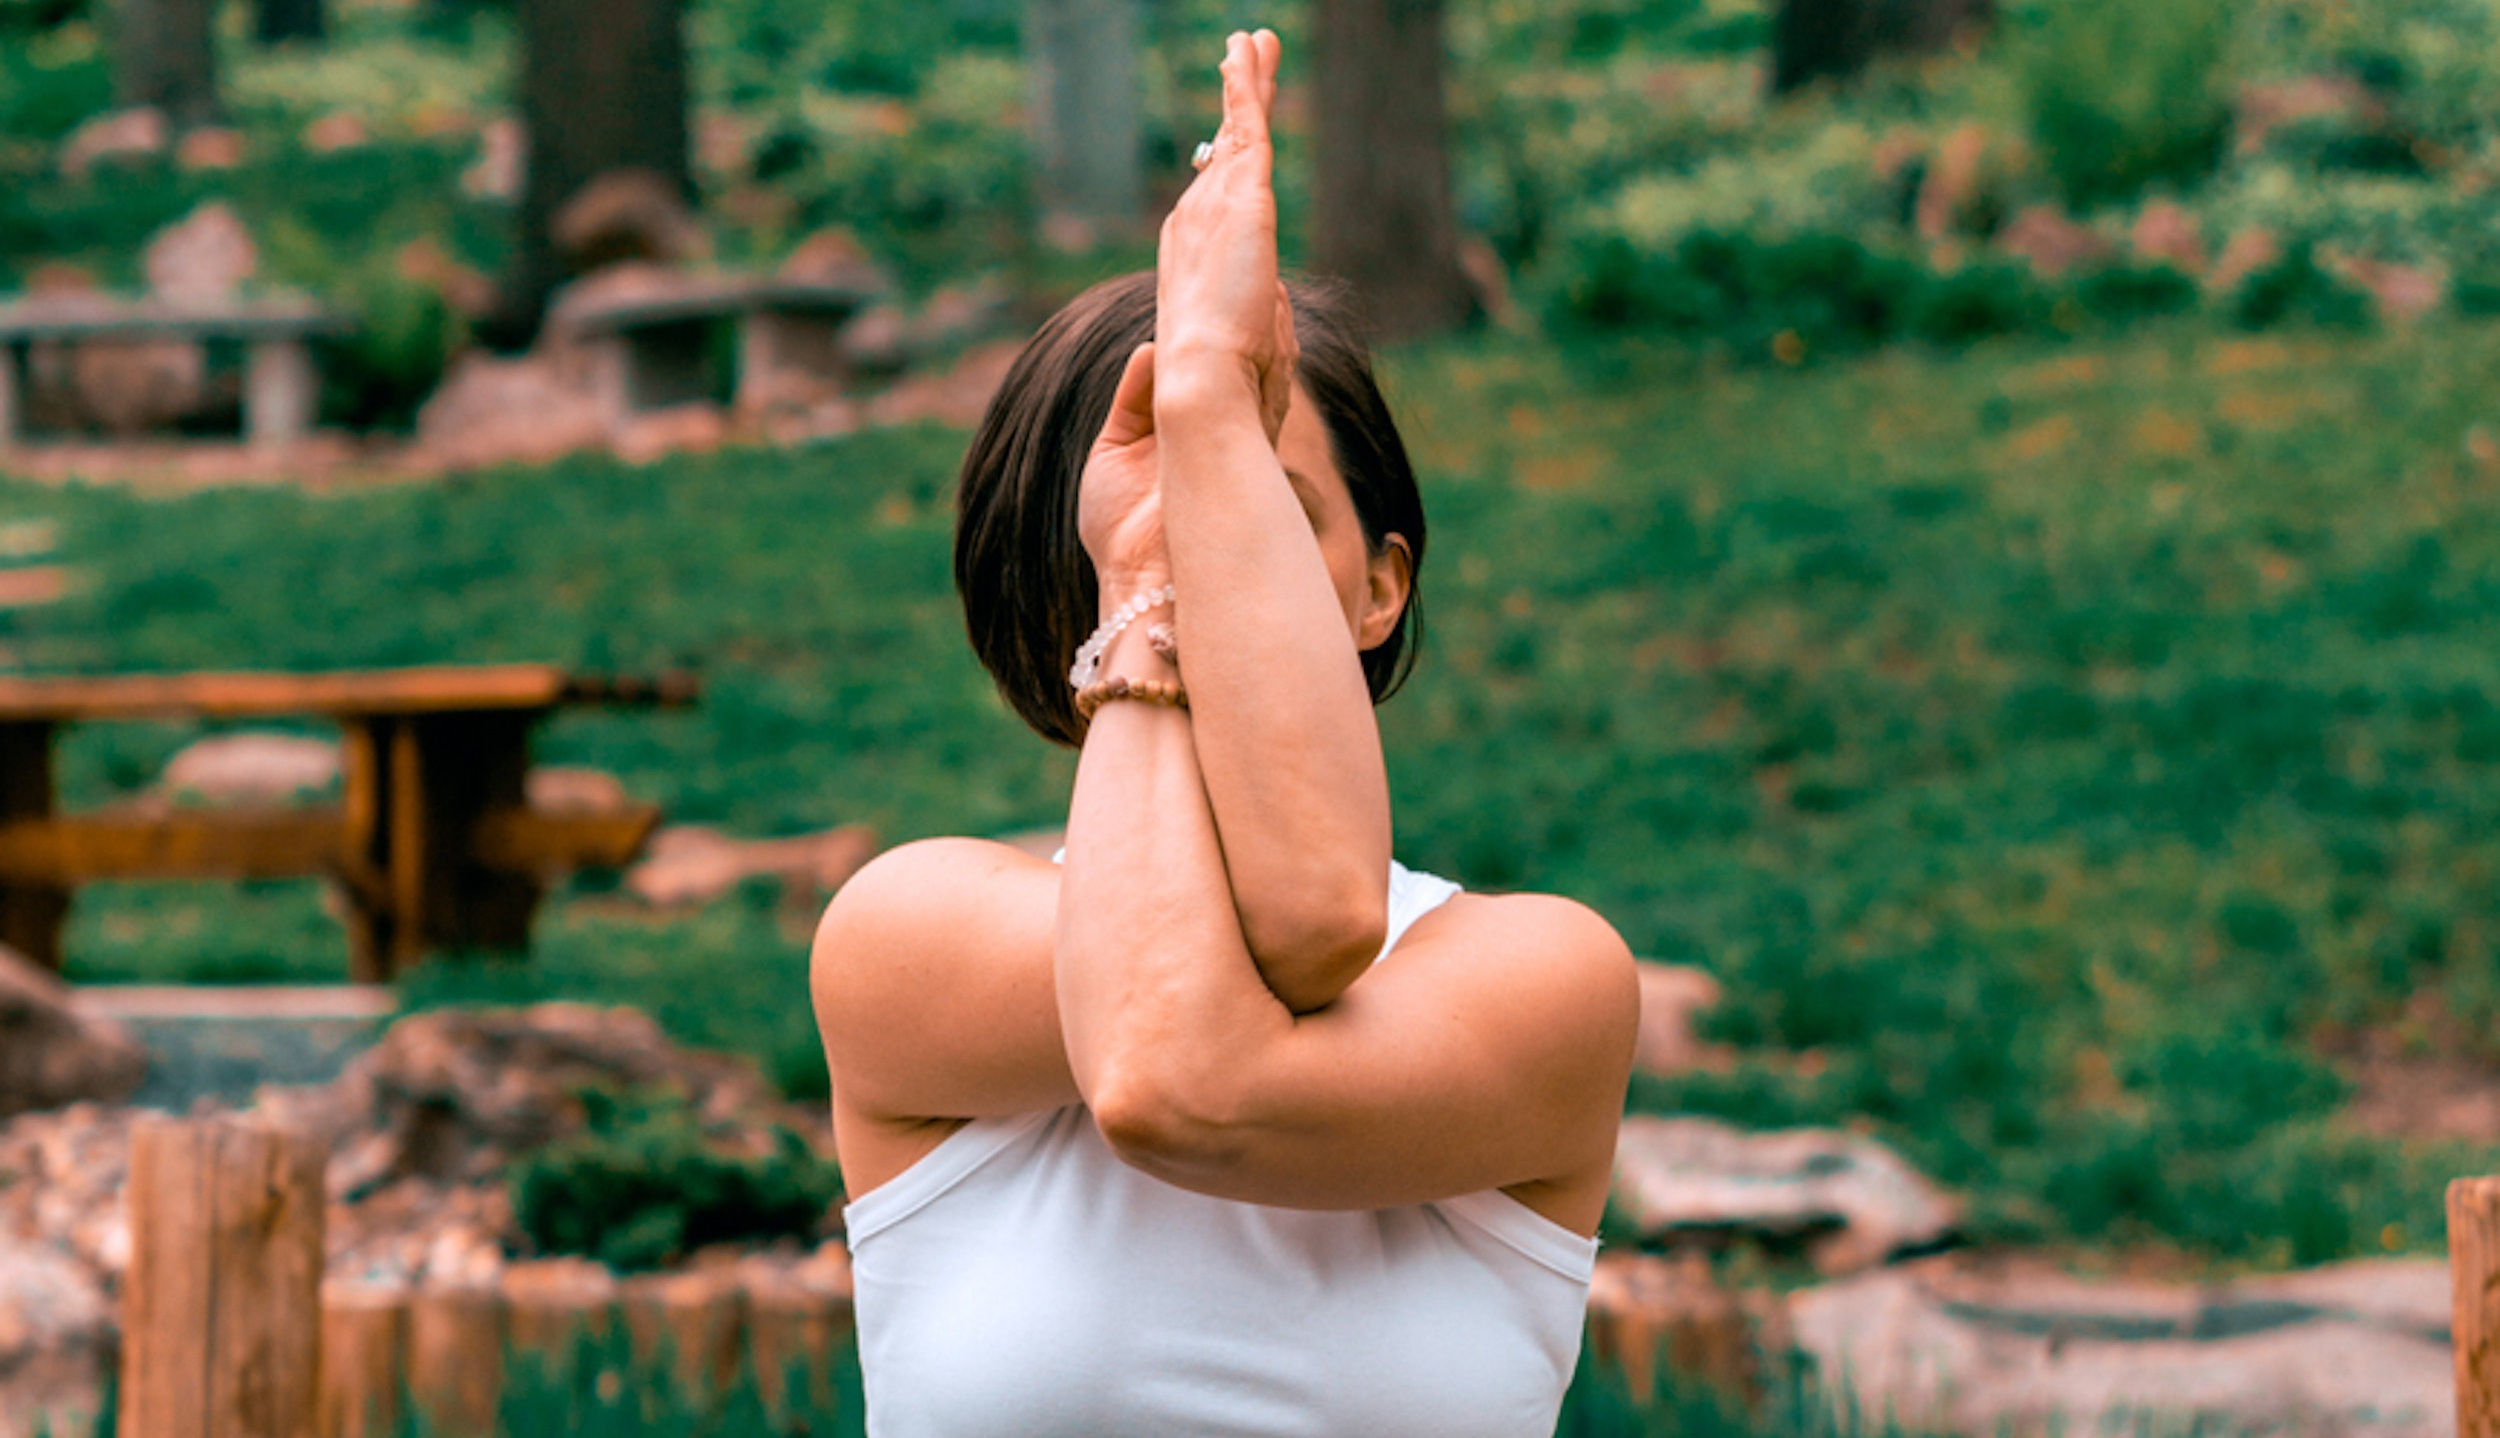 Yoga and Meditation - Yoga classes and One-On-One sessions designed to meet you where you are…